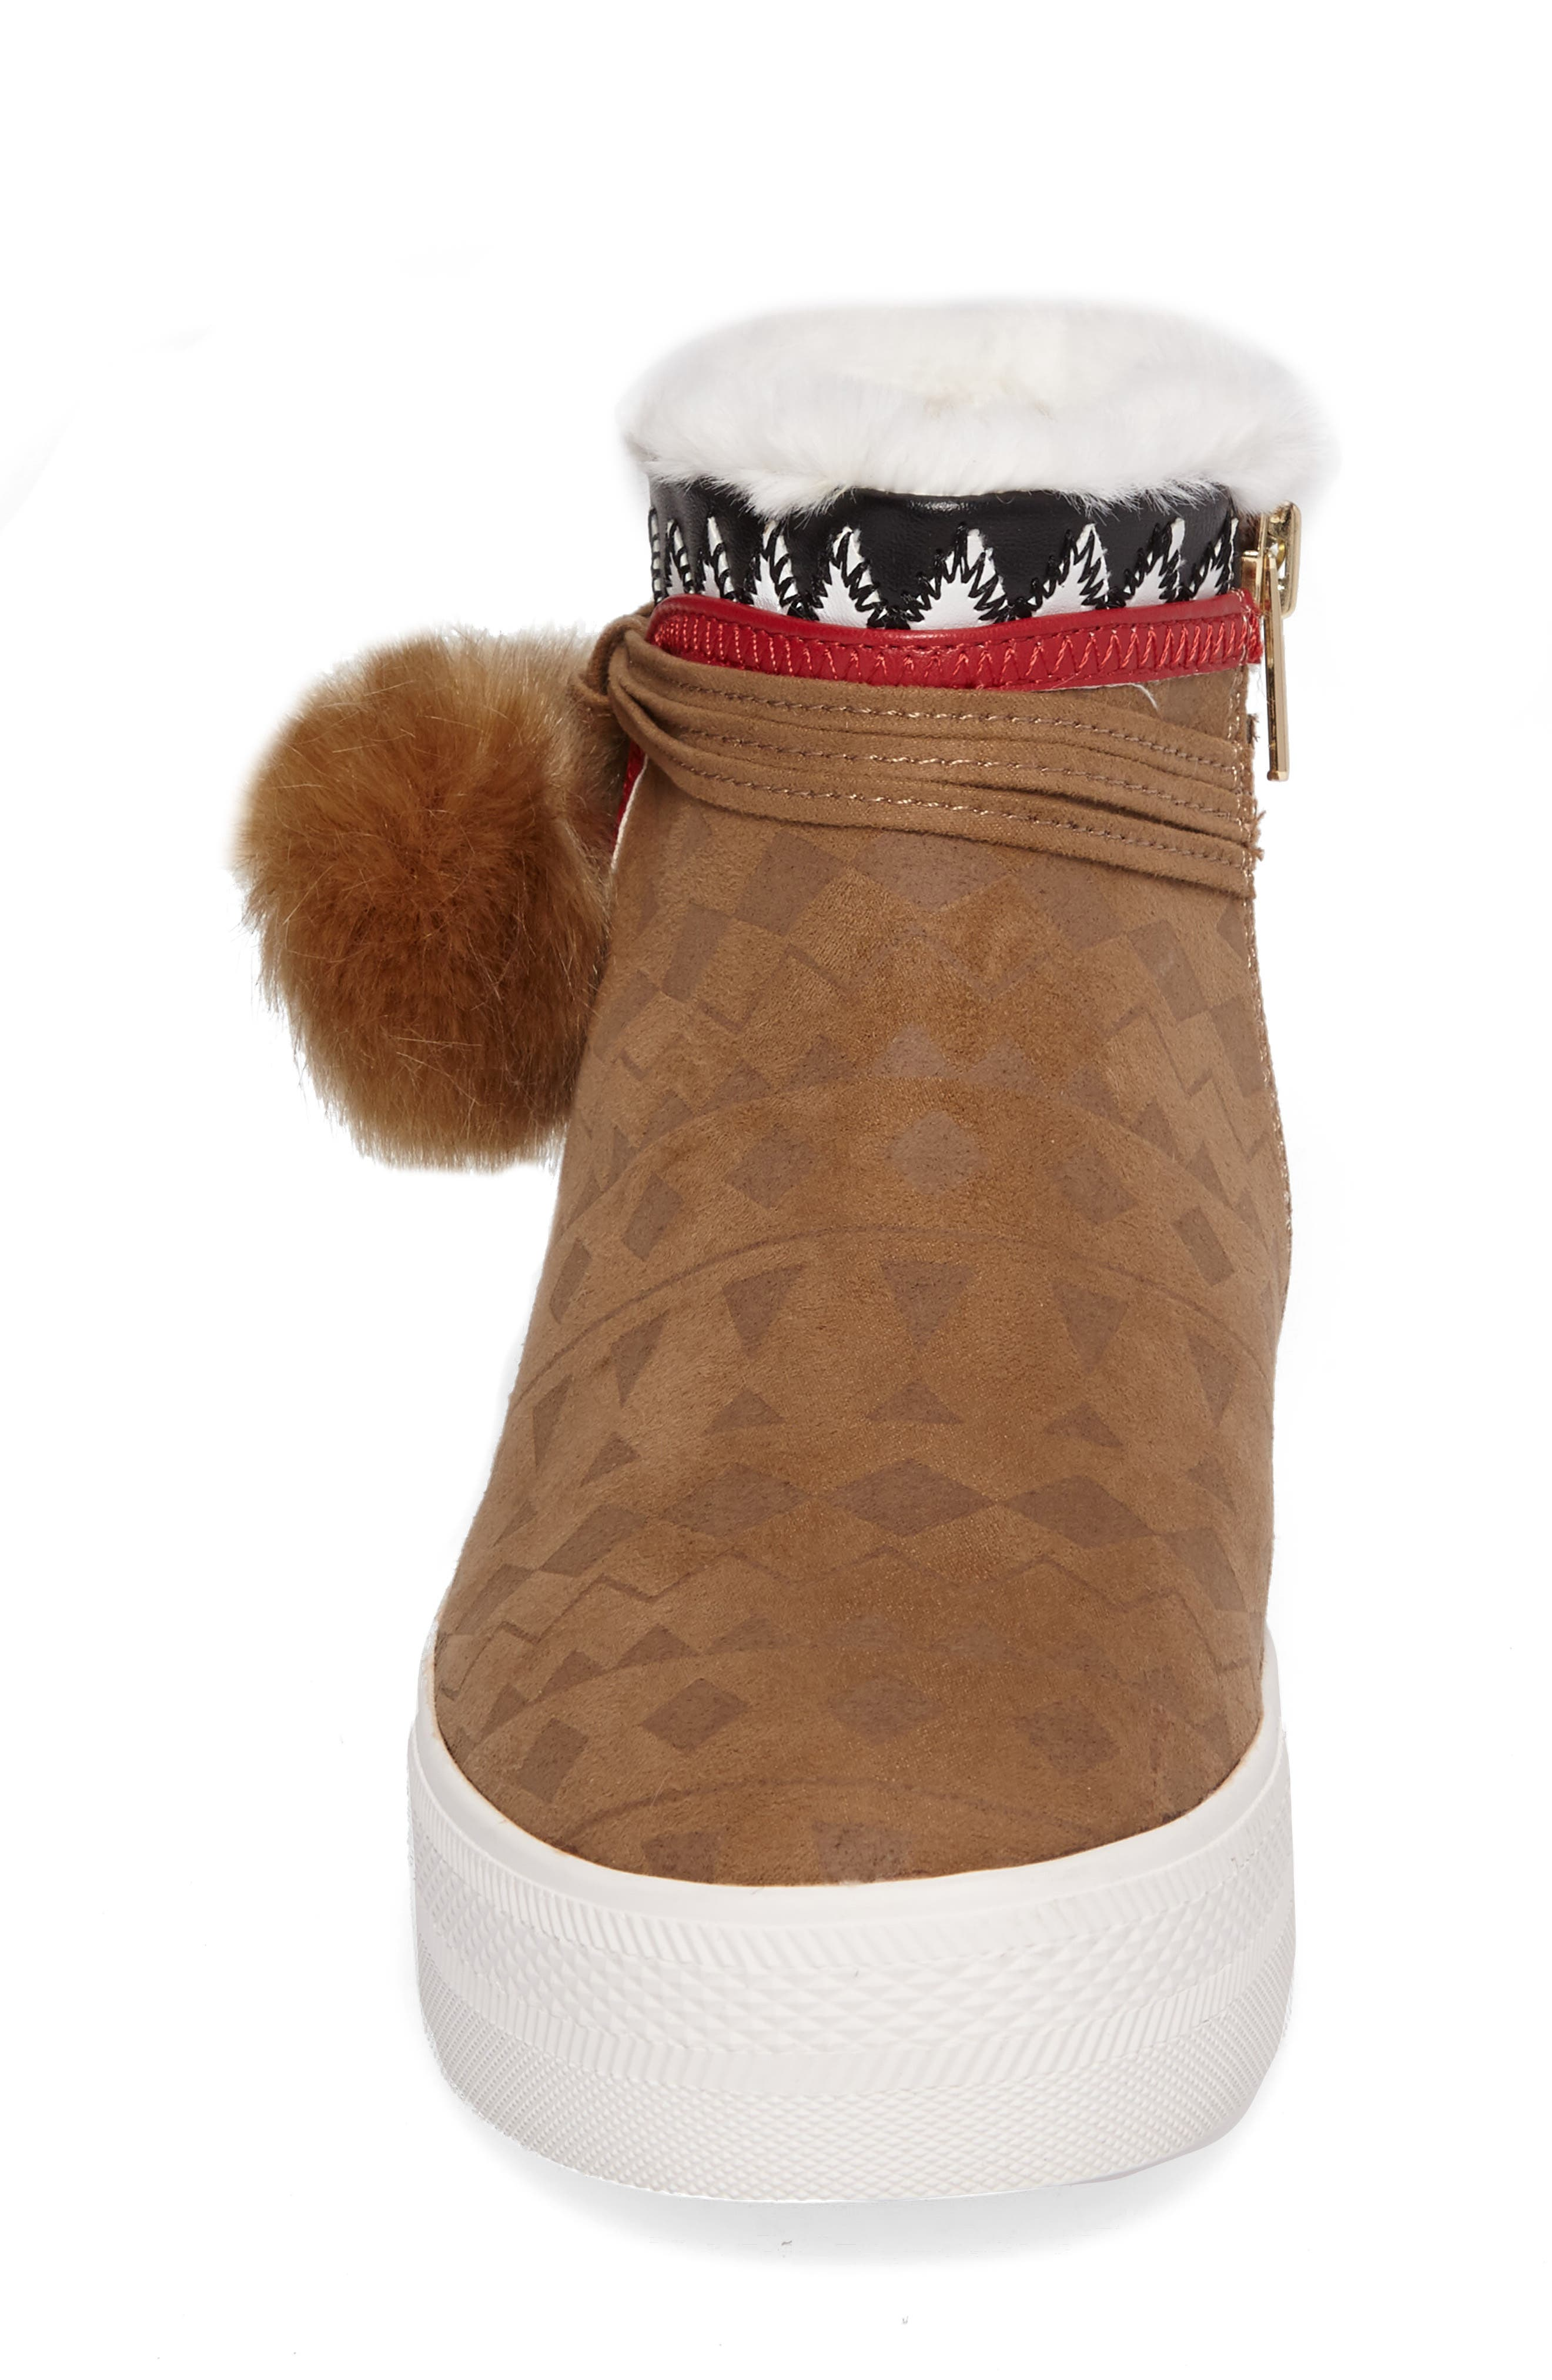 Alternate Image 4  - Ash Lynn Faux Fur Pom Sneaker Boot (Toddler, Little Kid & Big Kid)